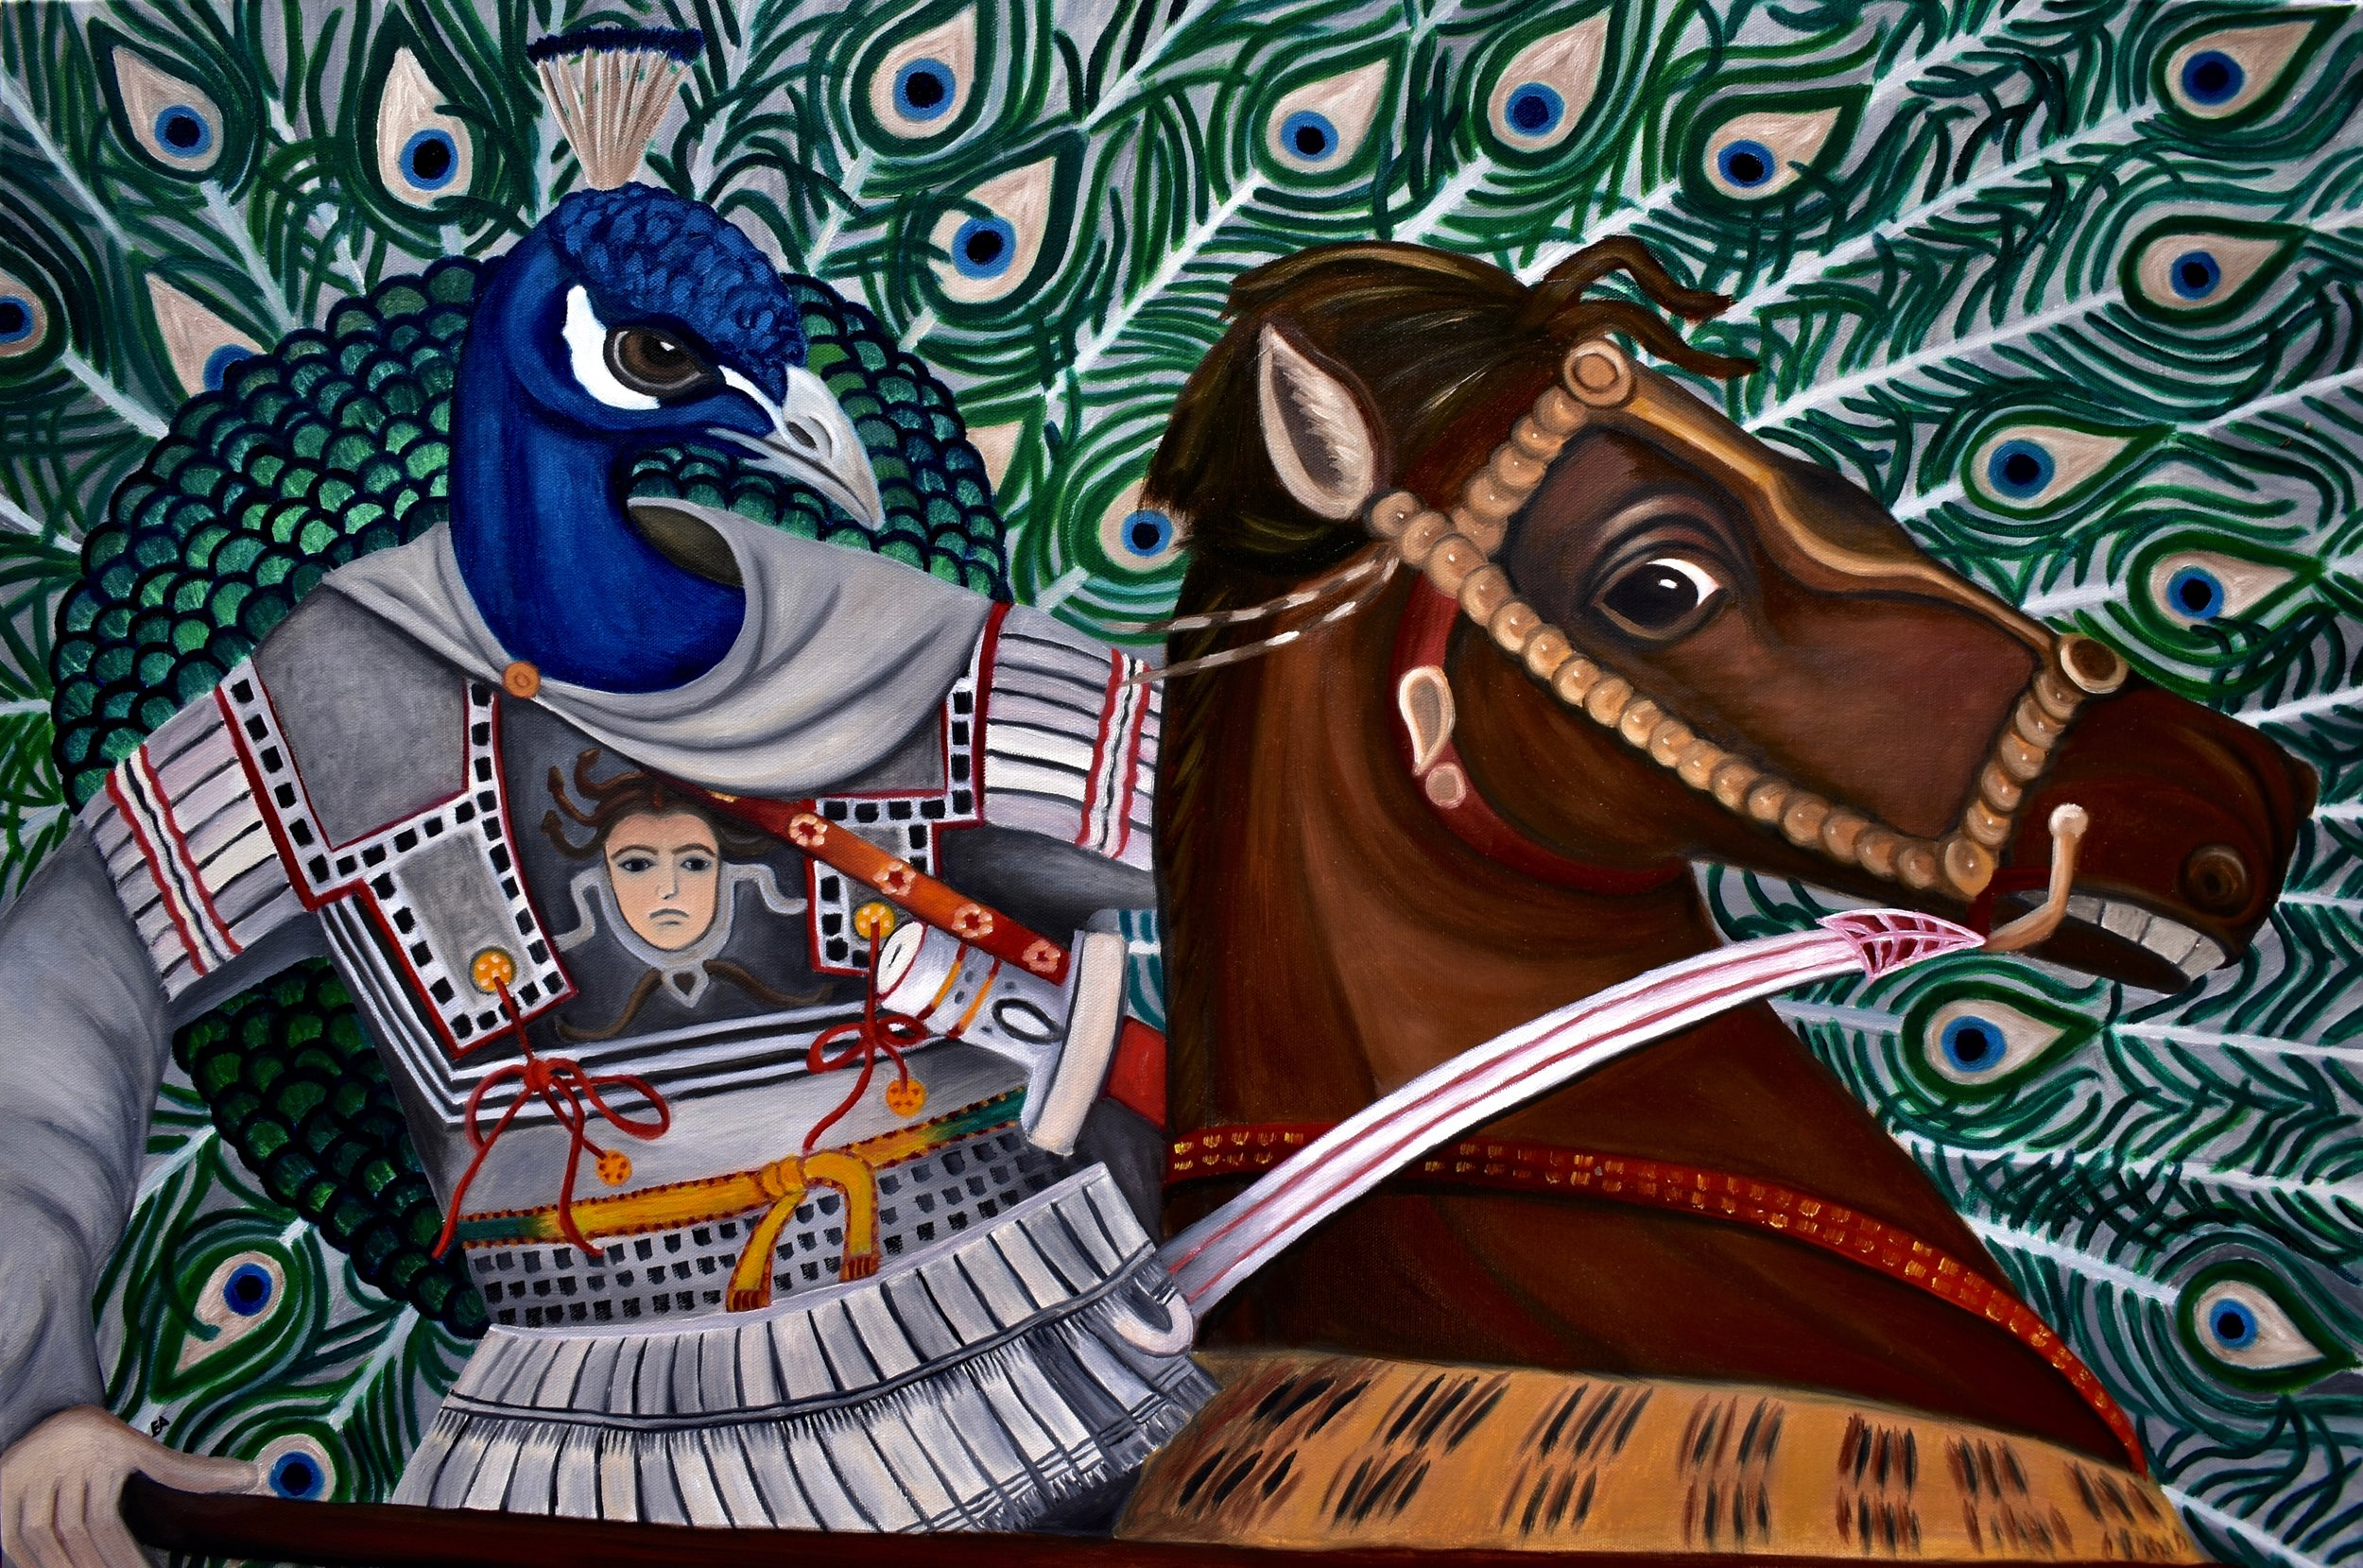 """The Immortal Commander"" 24x36 Oil on Canvas.  When Alexander the Great first discovered the peacock in Persia he was overwhelmed by their beauty. He thought it was a bird worthy of the Gods attention. The peacock feather soon became a symbol of his power.  It is believed by some scholars that Alexander the Great might have been the first to introduce the peacock to Europe. Later the poor peacockbecame popular not only in the courts of Europe as a symbol of royalty, but also as a delicacy. Some even thought that you could become immortal by eating the peacock, as legend told them that the peacock's flesh never rotted.   Painting inspired by: A detail of Alexander and his horse Bucephalus from The Alexander Mosaic, unknown artist, first century AD."